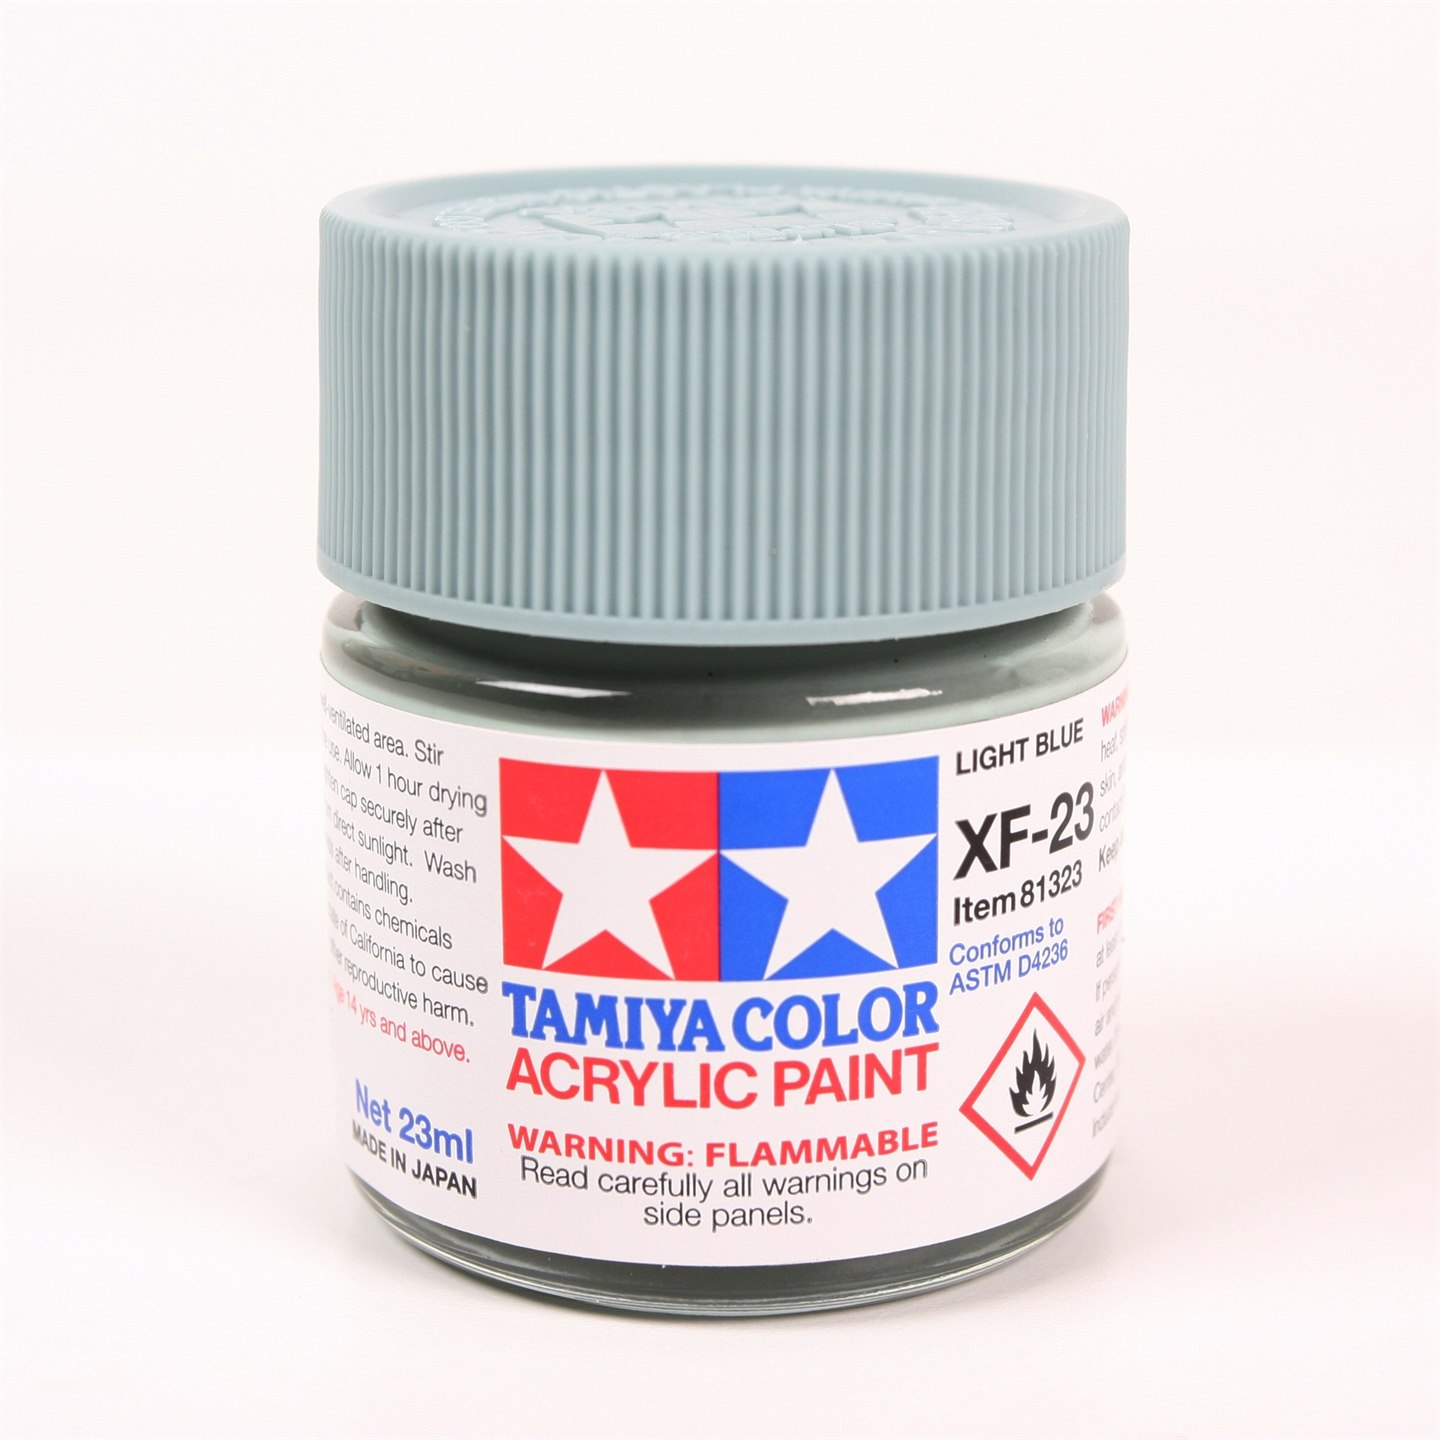 Tamiya Color Acrylic Paint XF-23 (Light Blue) (23ml)